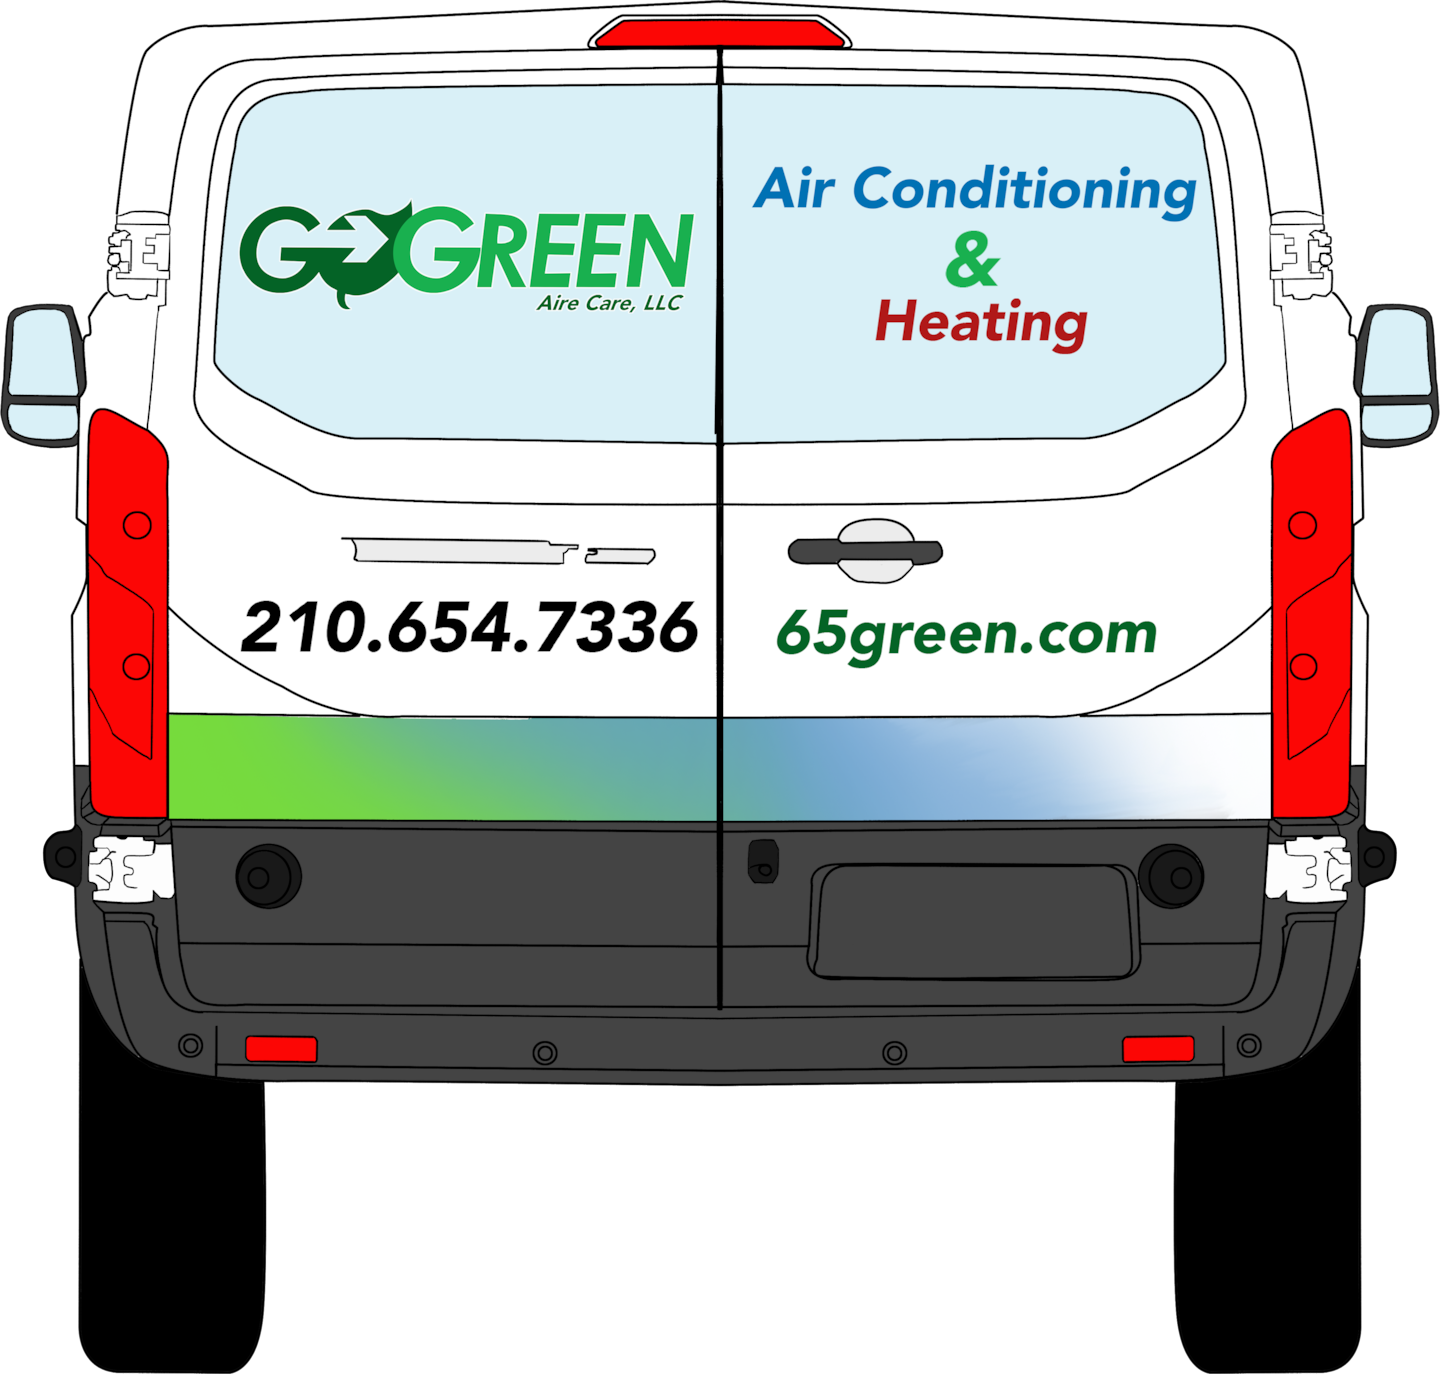 Go Green Aire Care LLC